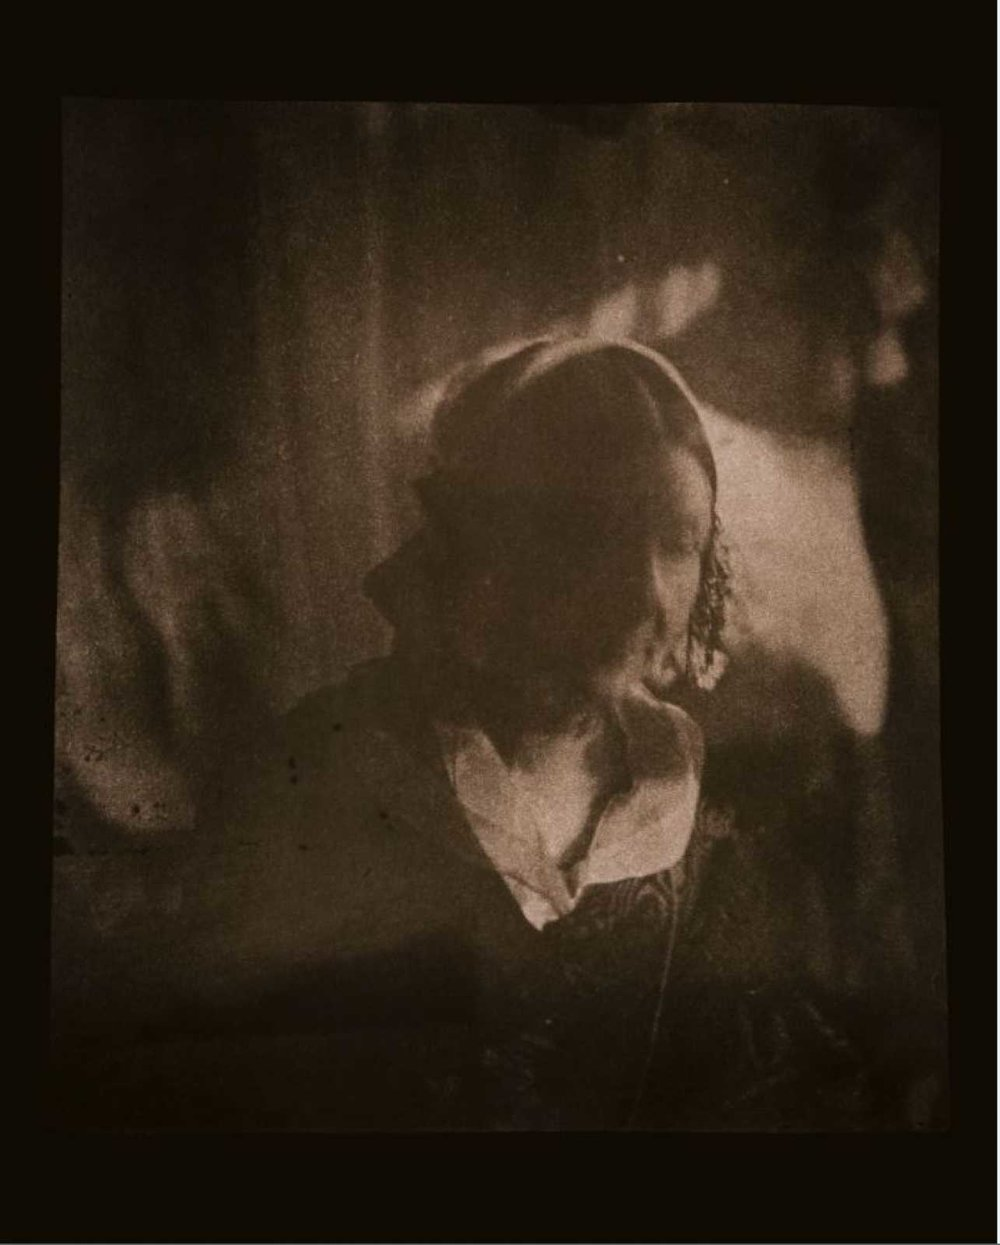 Hiroshi Sugimoto, Believed to be Mlle. Amélia Petit, Talbot Family Governess, circa 1840-1841, 2009